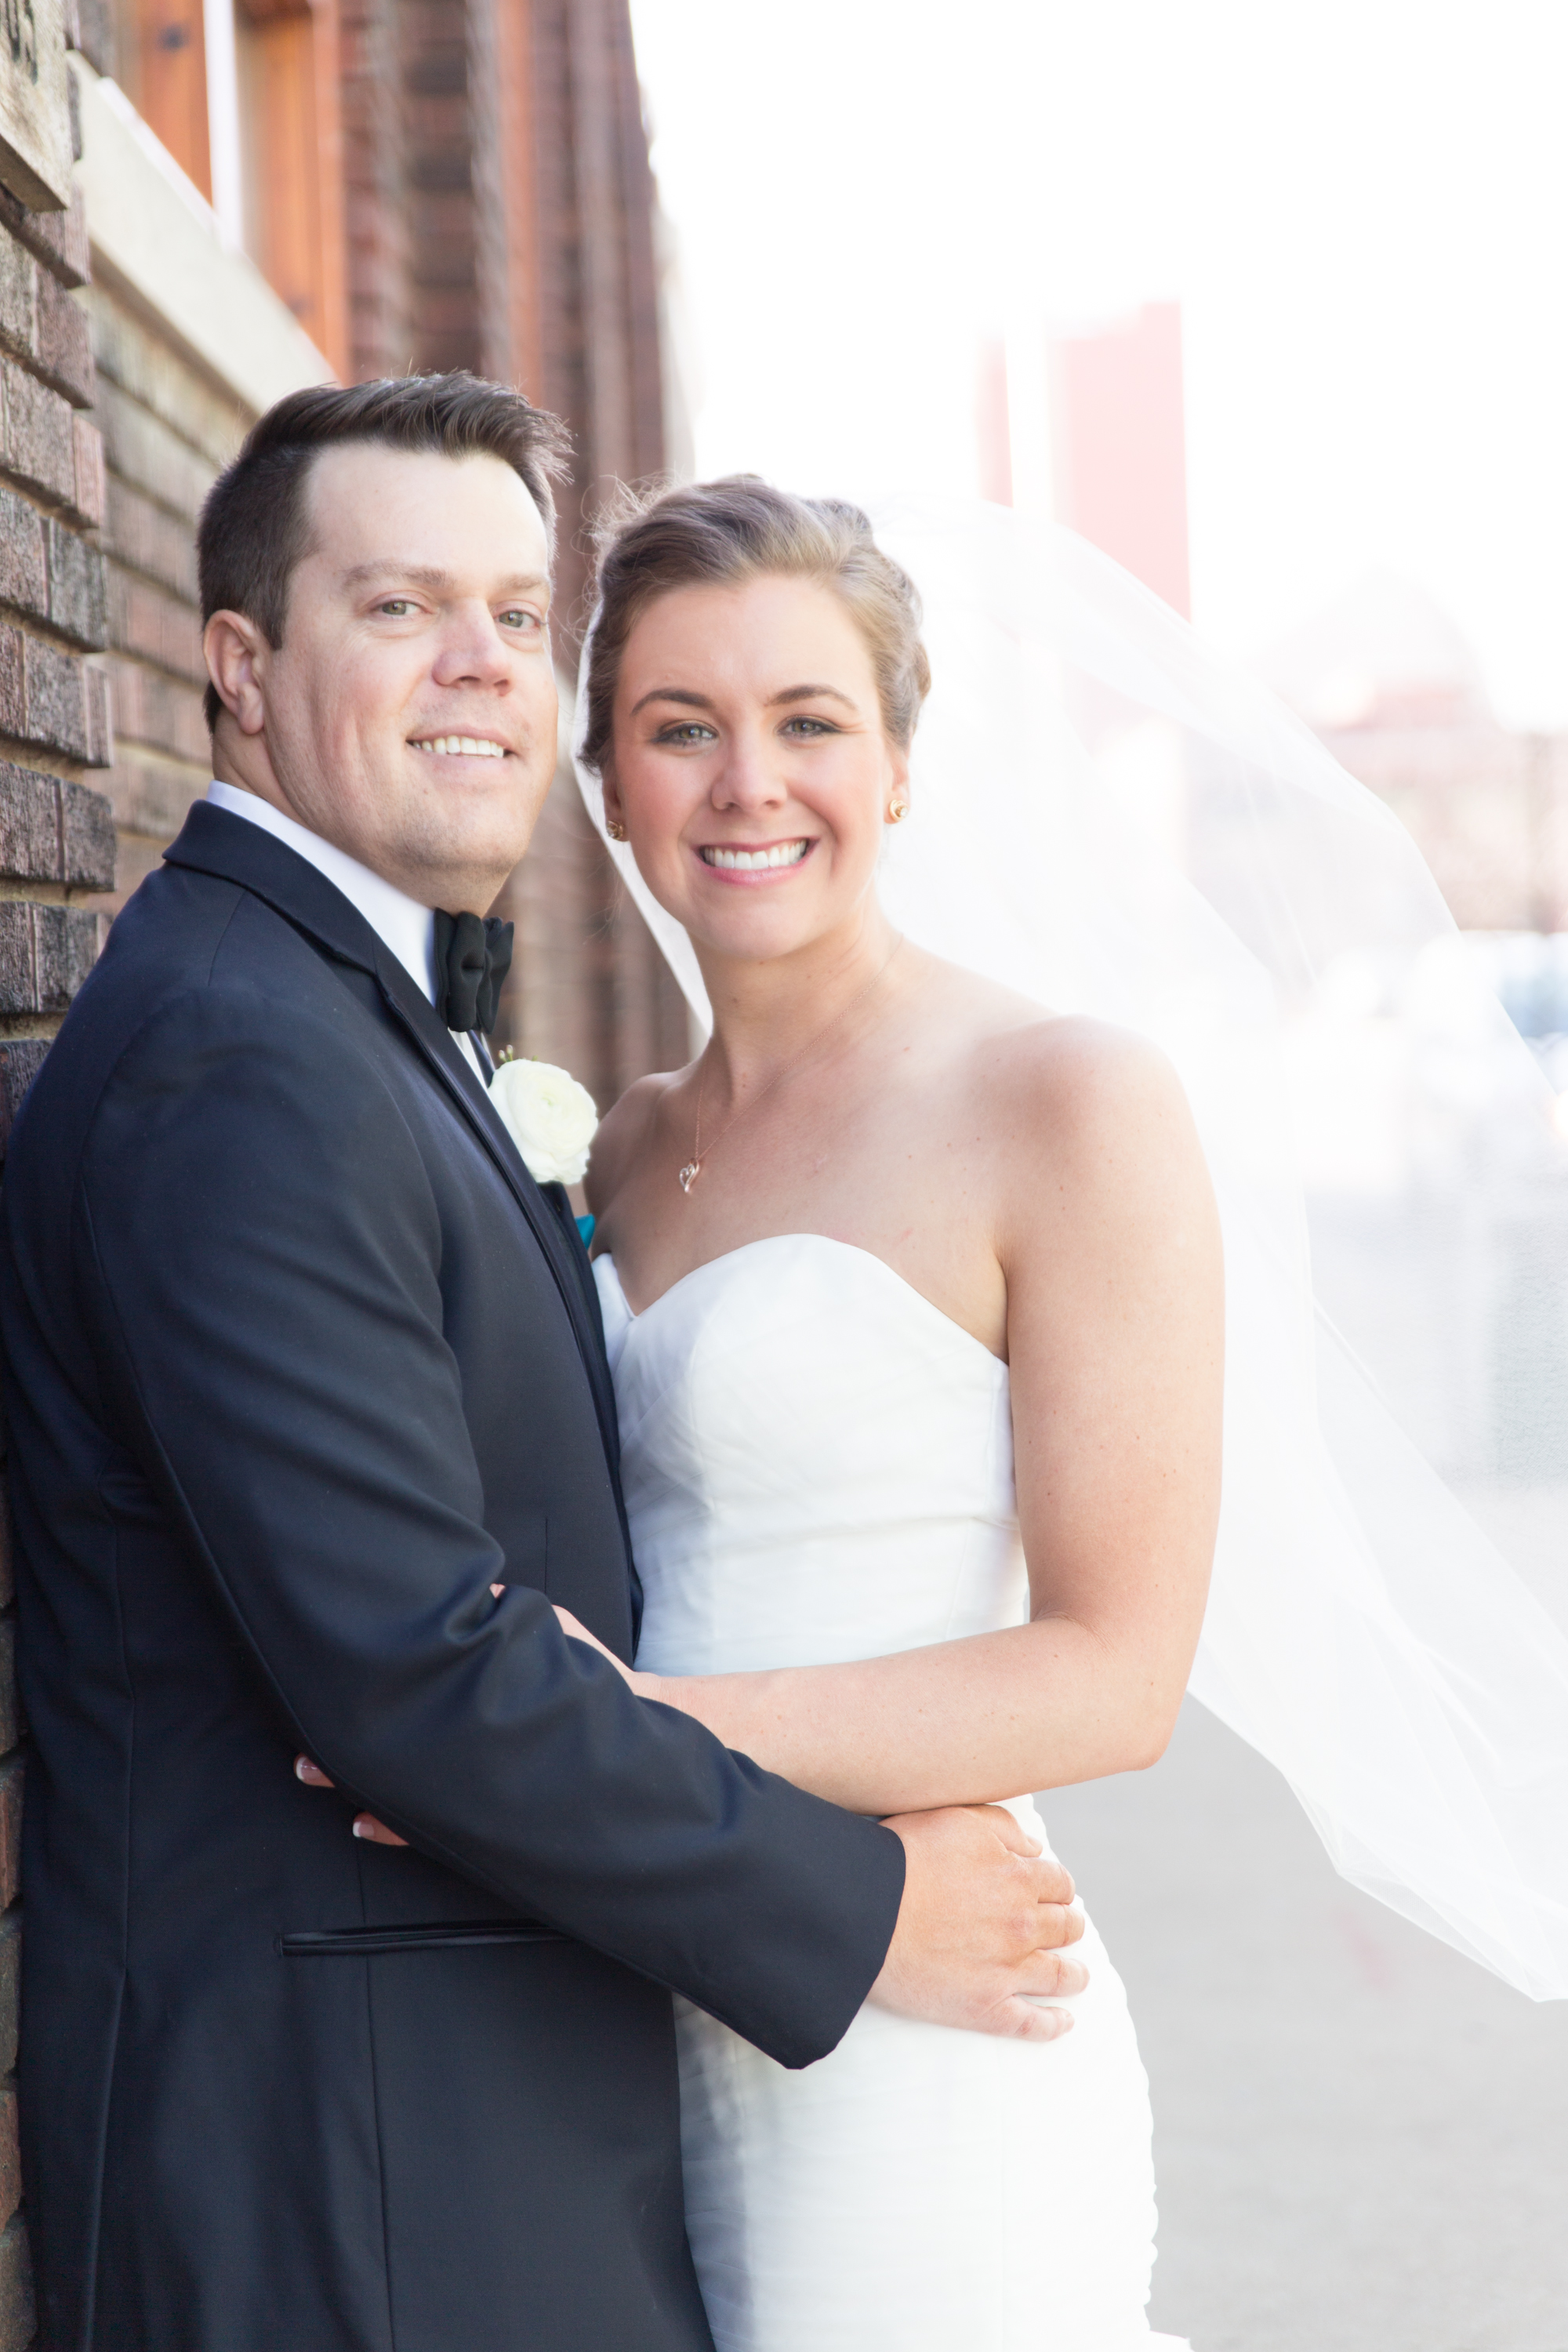 CONGRATS YOU TWO! WE SIMPLY COULDN'T BE HAPPIER FOR MADELINE & CURT!